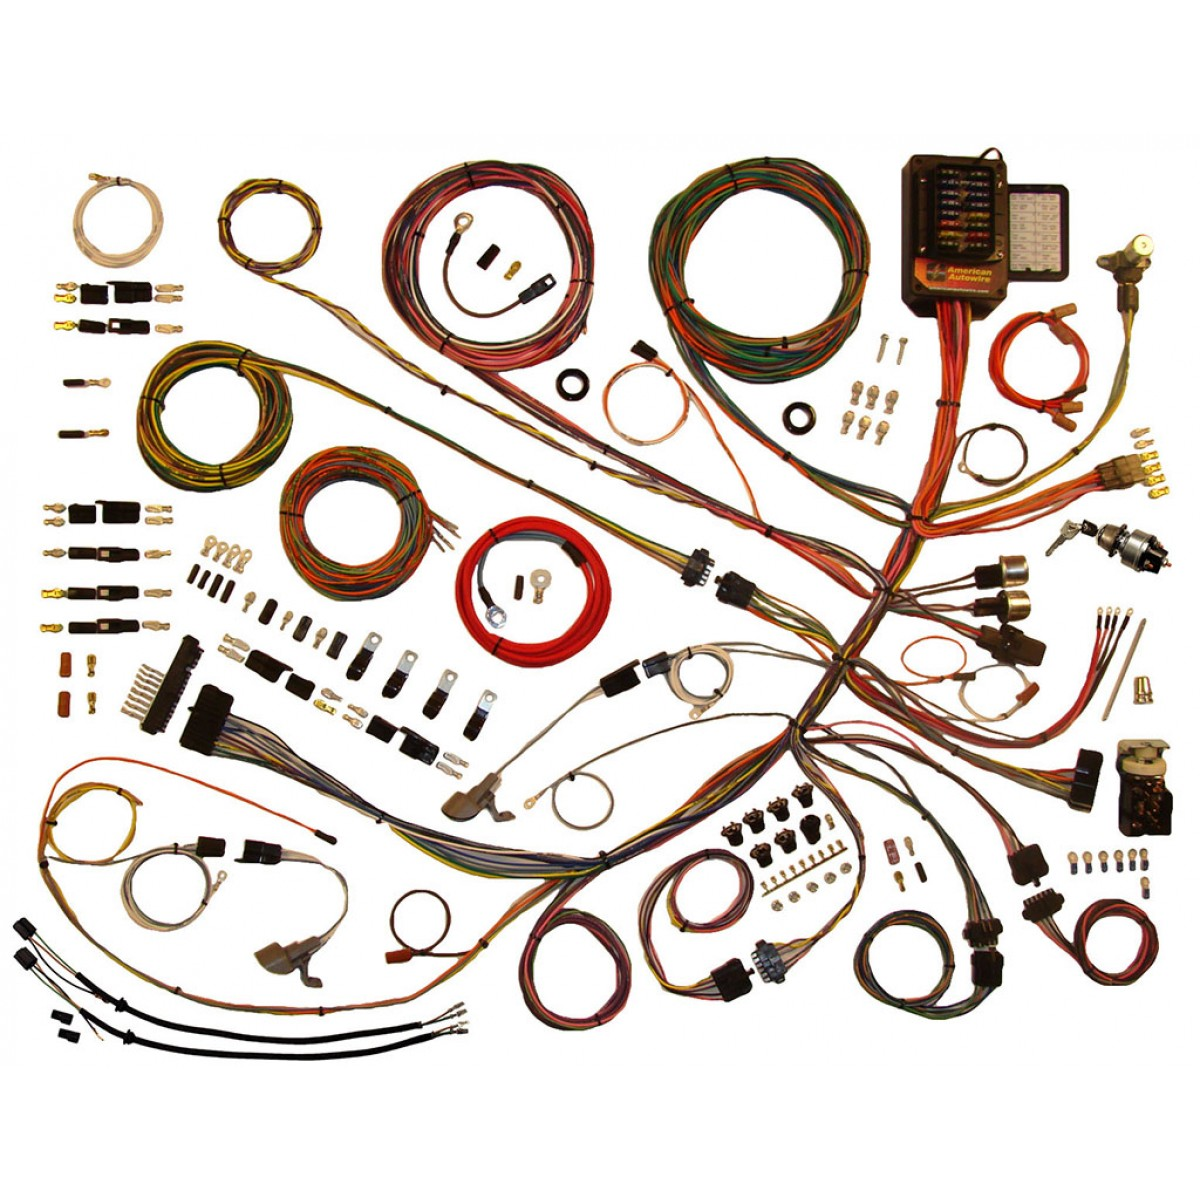 1953 1956 ford f100 wiring harness complete wiring harness kit rh code510 com 1956 ford truck wiring harness 1956 ford fairlane wiring harness